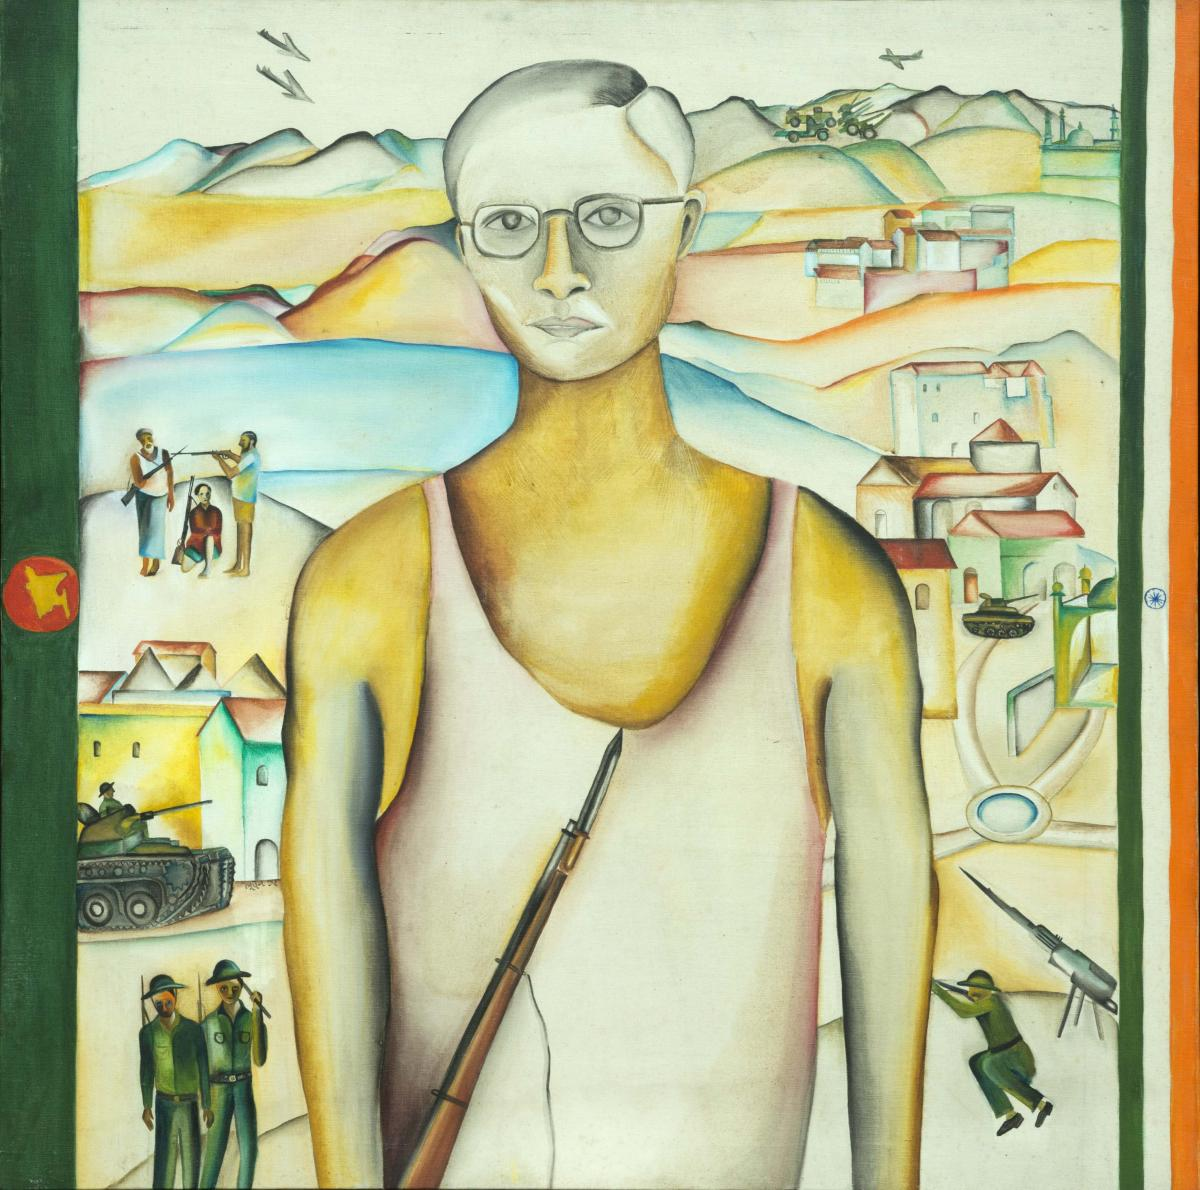 Bhupen Khakhar, Mukhti Bahini Soldier, 1972 Oil paint on canvas. Collection Devinder and Kanwaldeep Sahney. Photo: Pablo Bartholomew